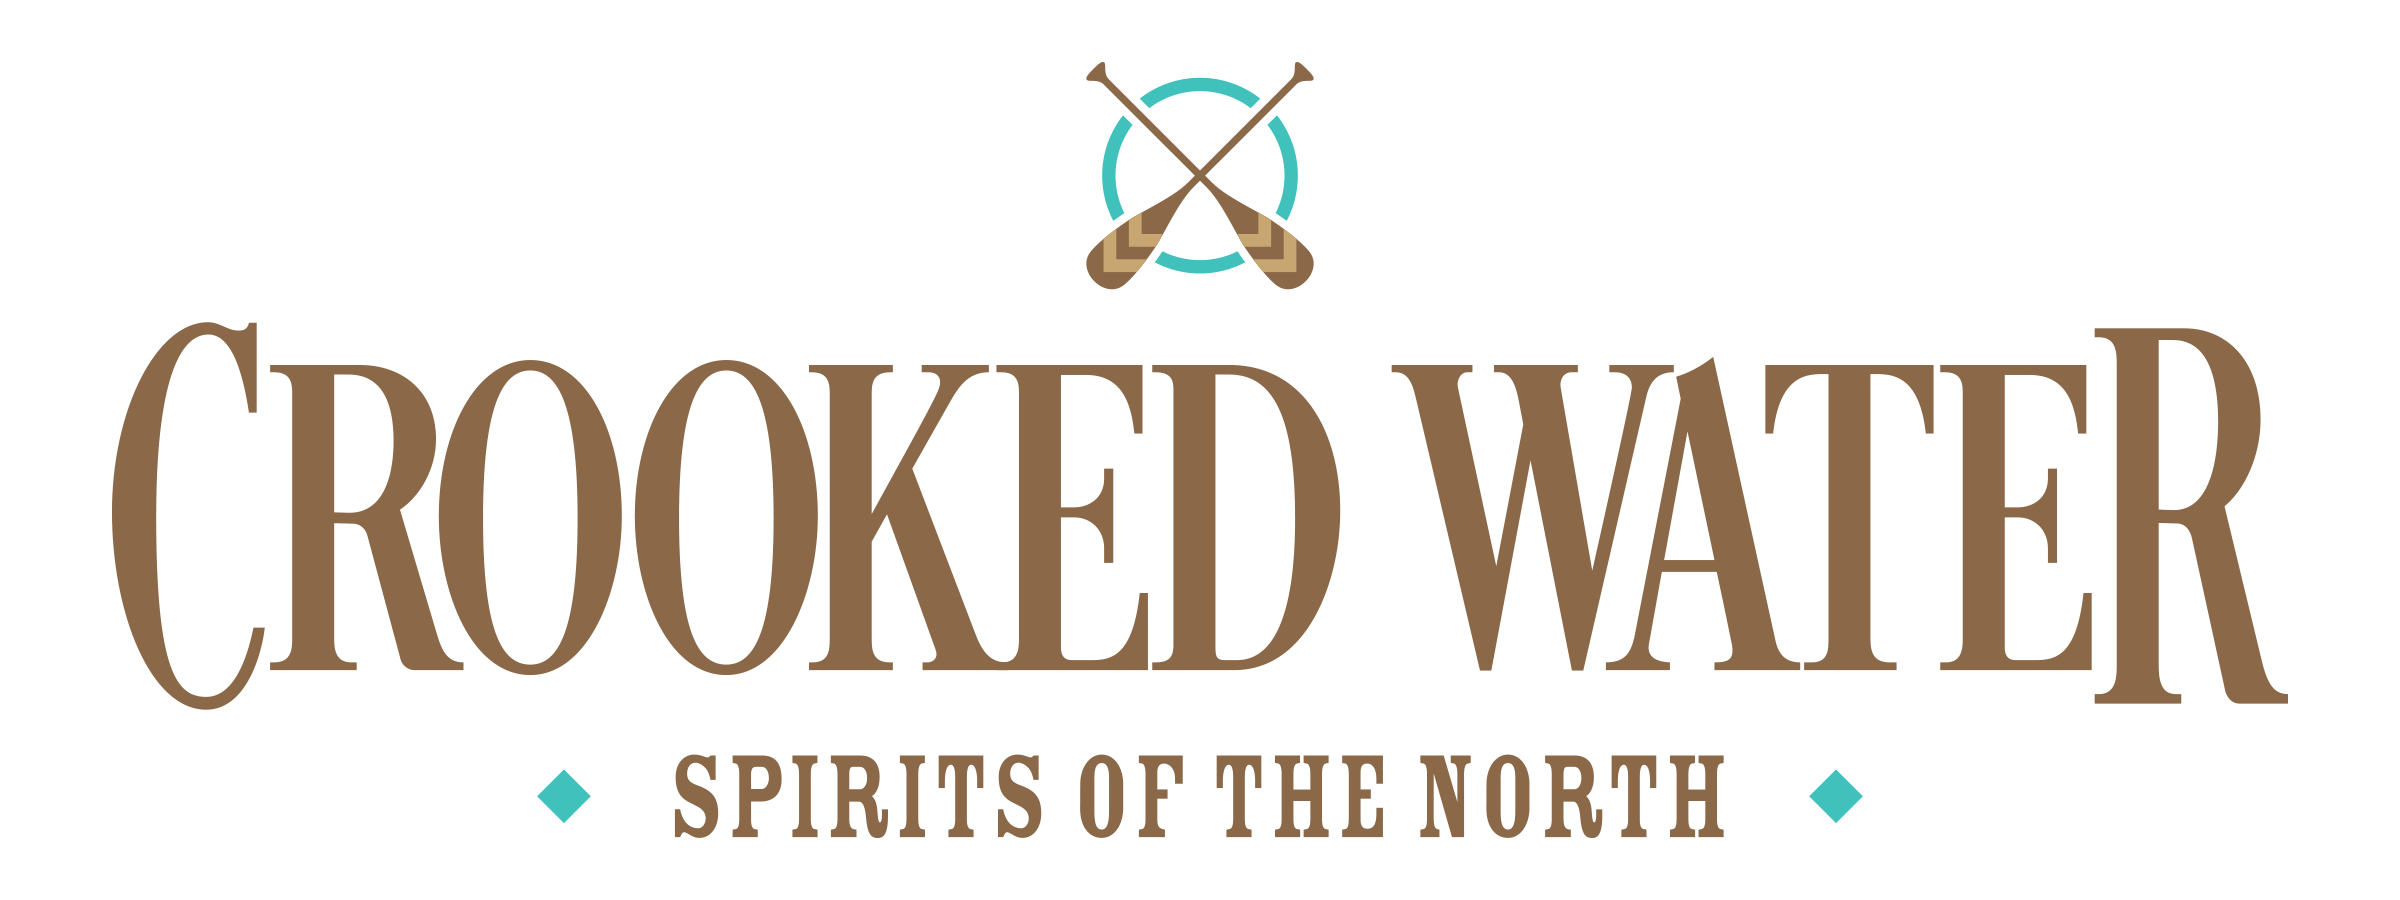 Crooked Water Spirits Logo